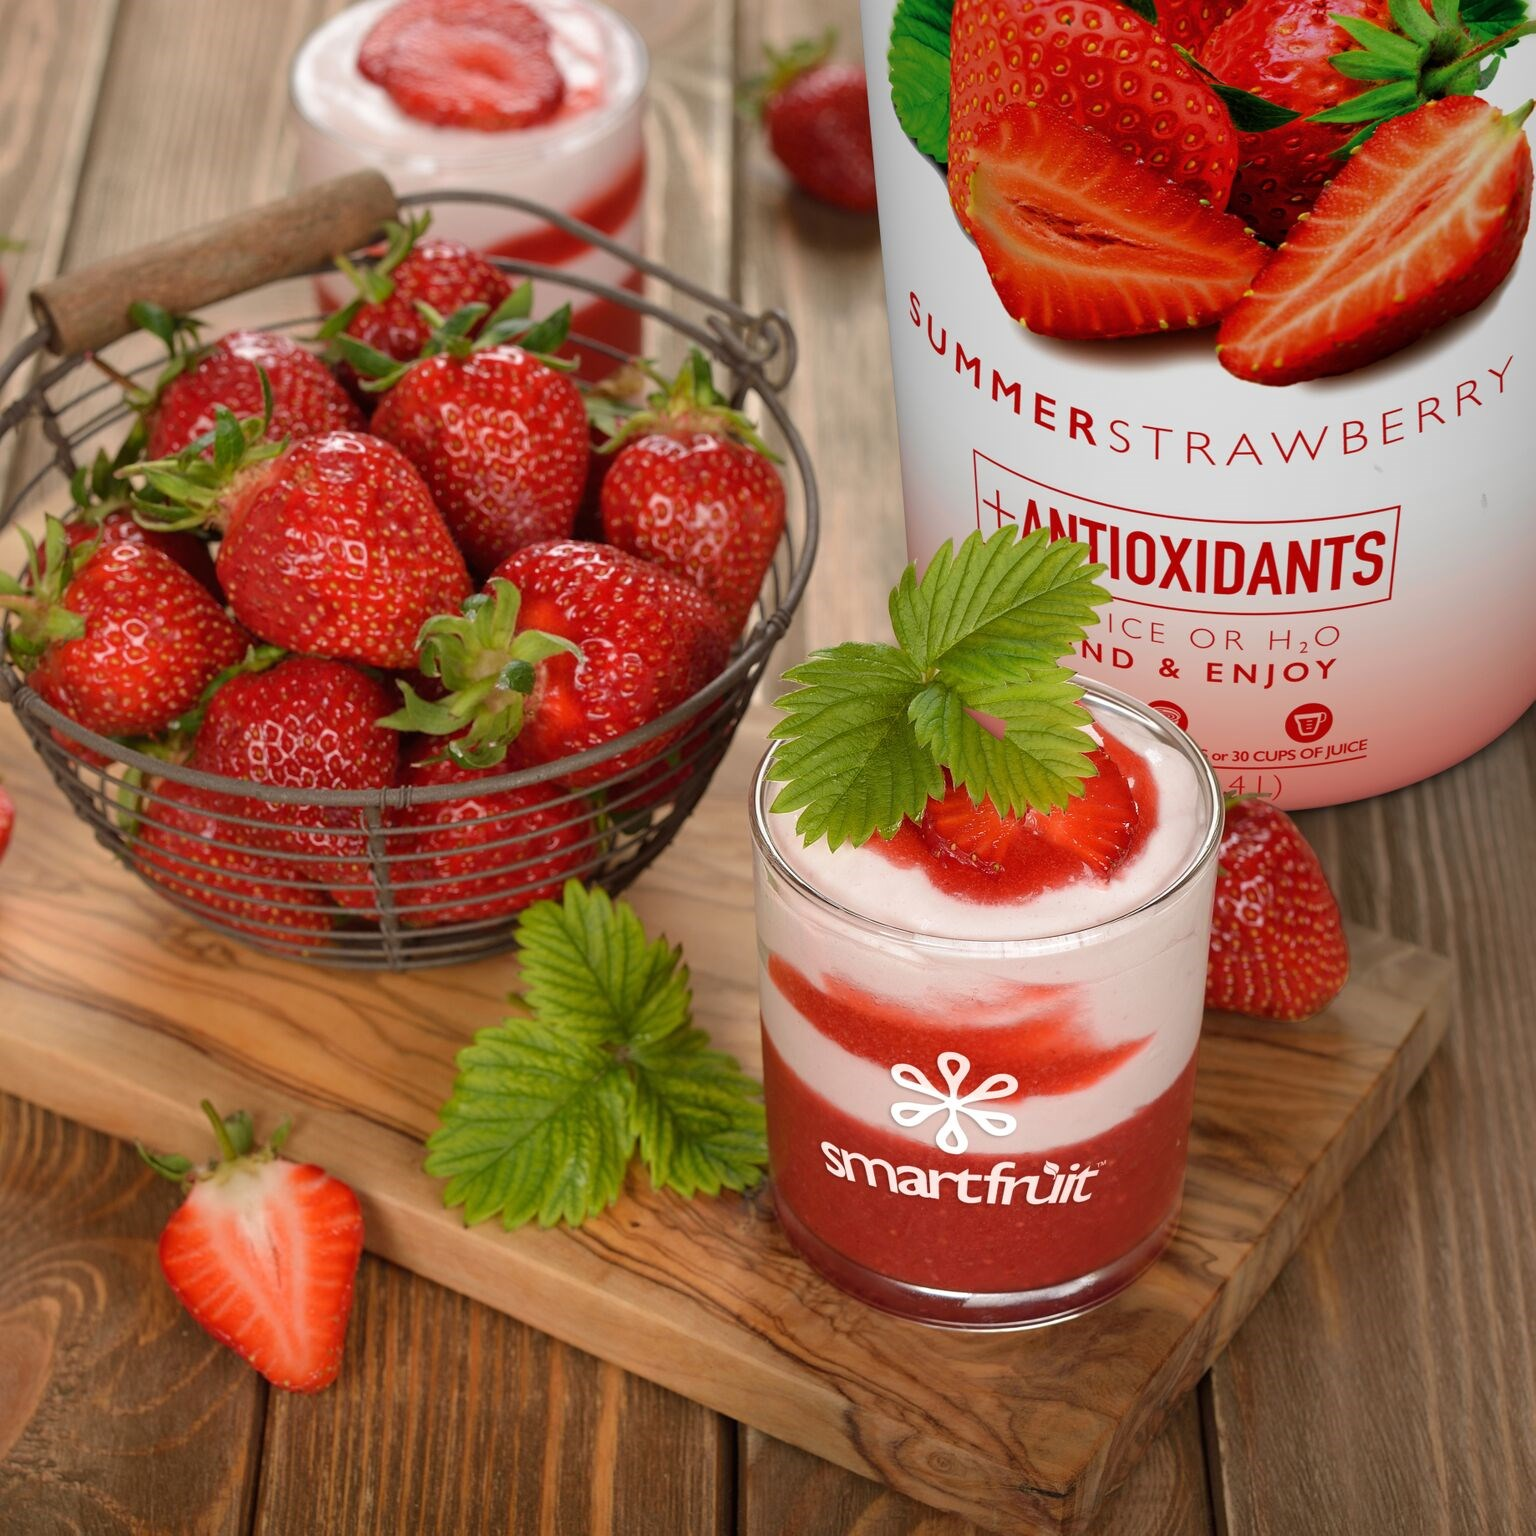 Summer Strawberries and Cream Parfait Made with Smoothie Mix